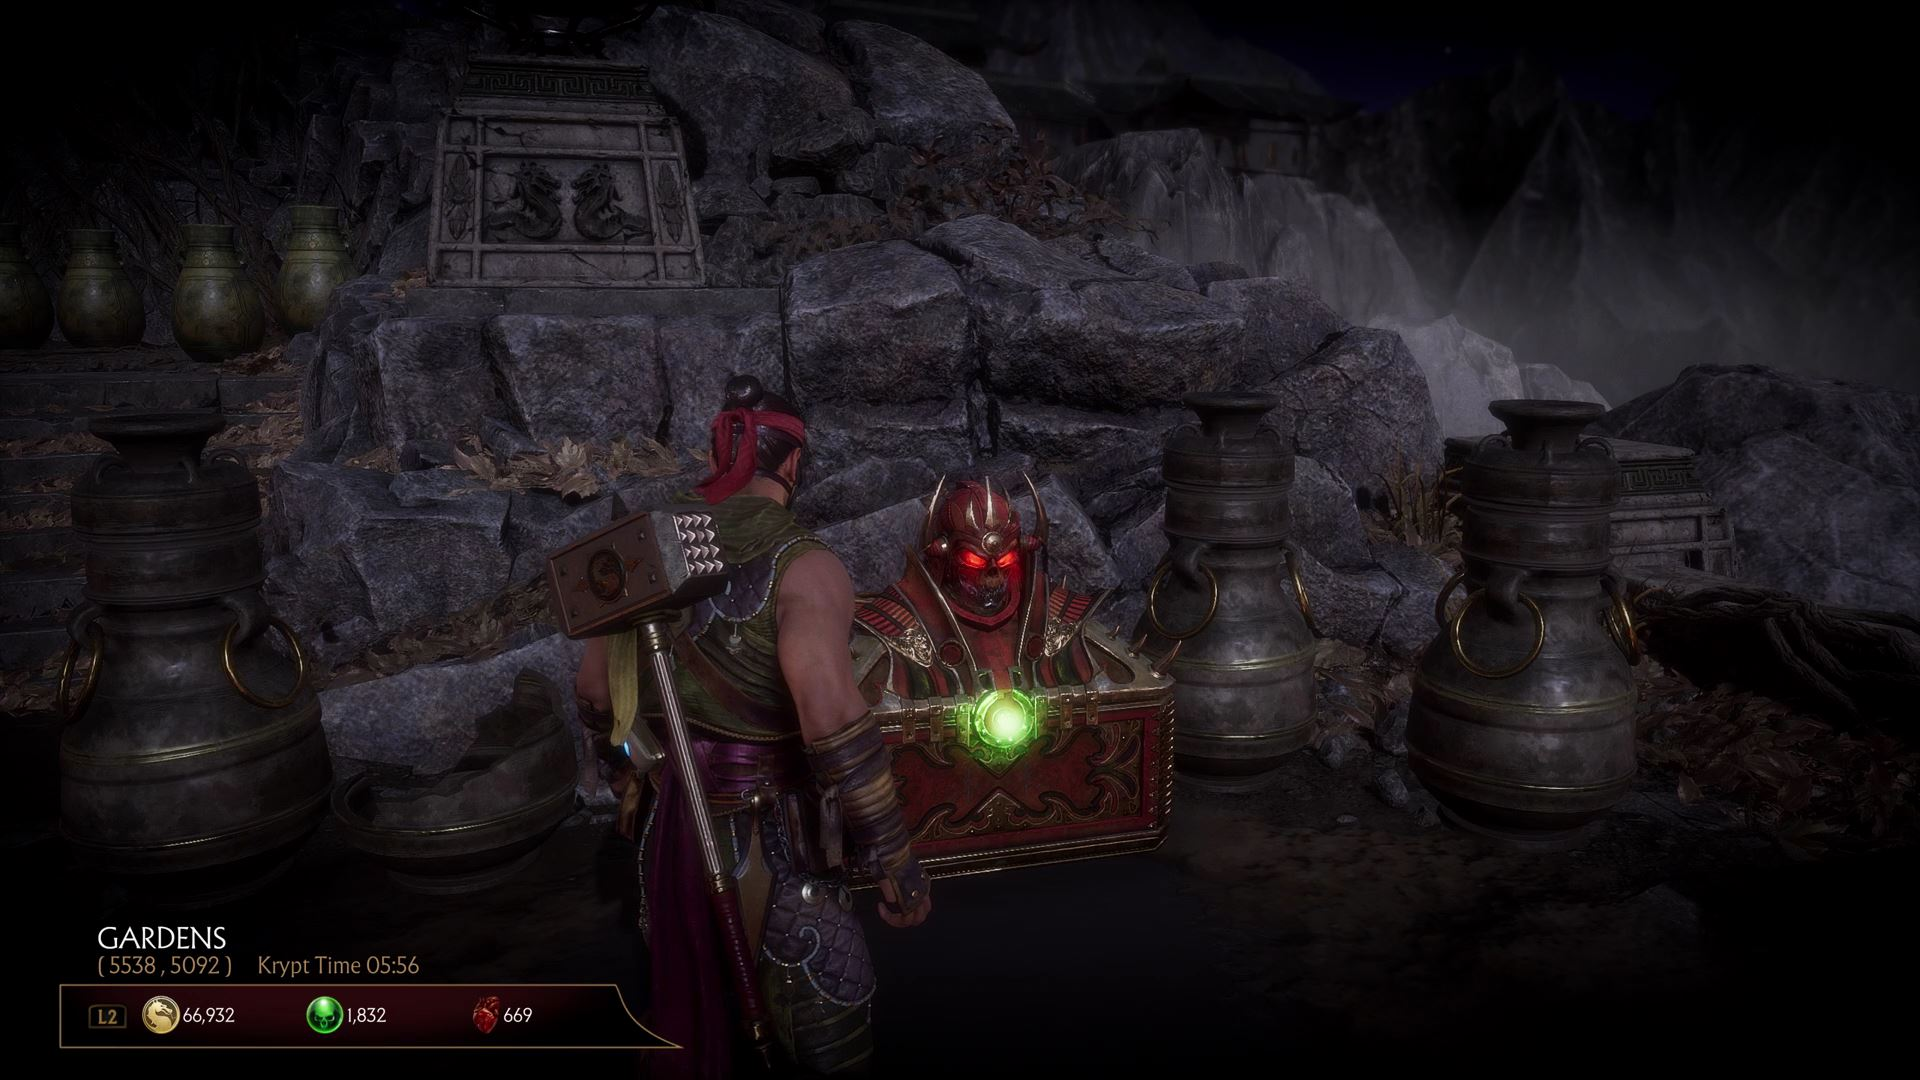 Mortal Kombat 11 Heart Chests Always Contain The Same Loot